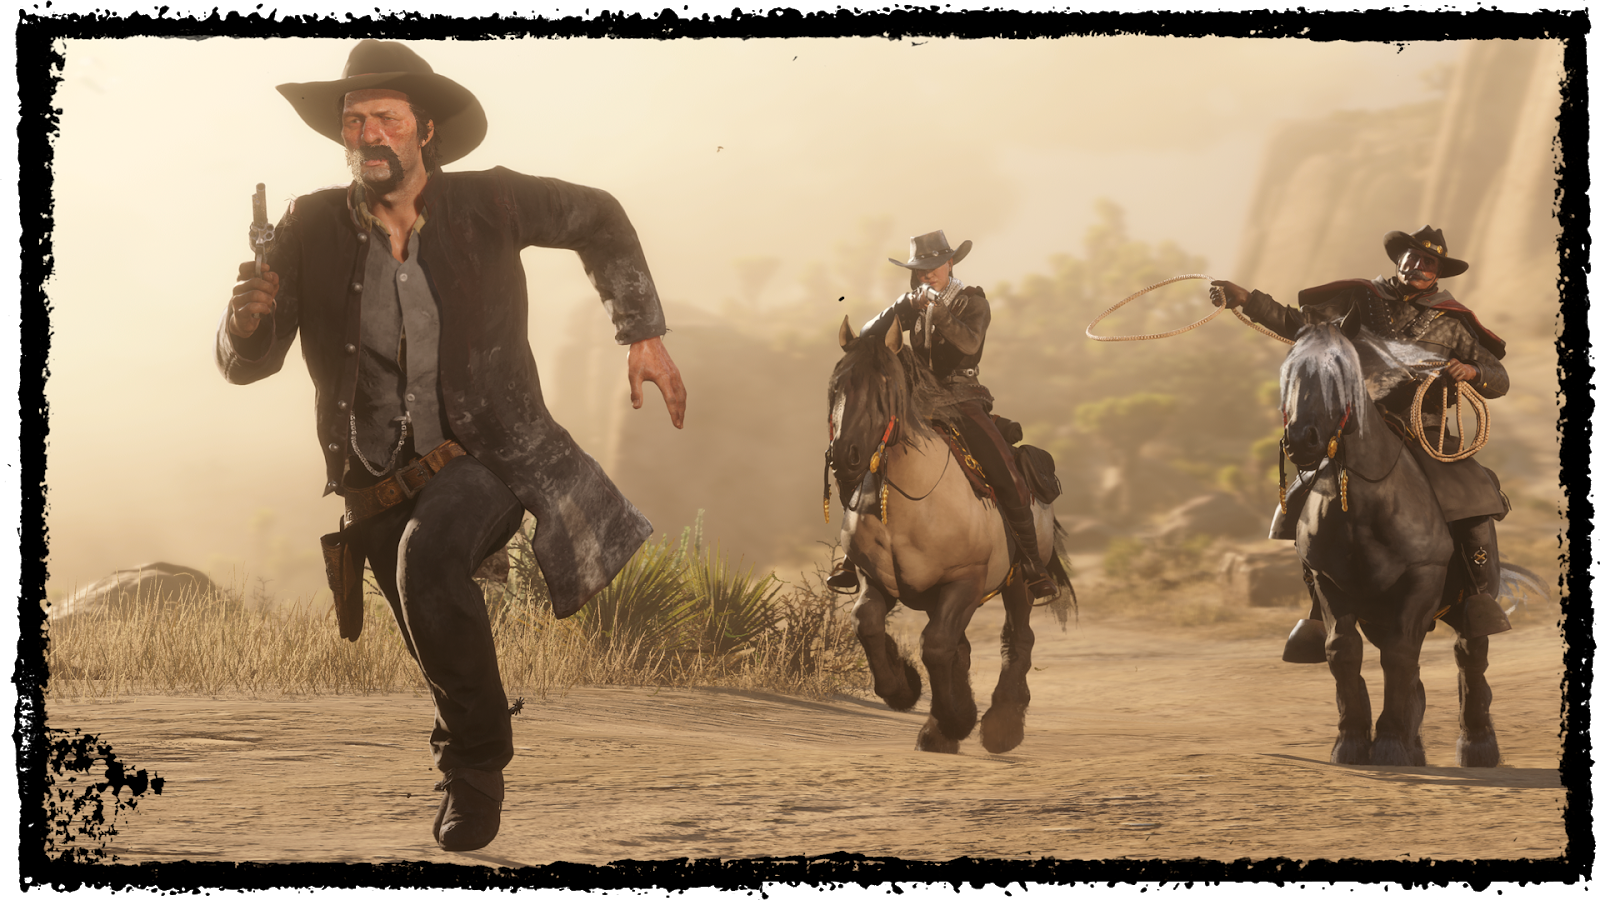 red dead online red dead redemption 2 online red dead online collector map red dead online update red dead 2 online red dead redemption 2 online update red dead redemption online red dead online map reddit red dead online is red dead online cross platform red dead online legendary animal collector map red dead online red dead online best horse red dead online news red dead online outfits red dead online outlaw pass 3 red dead redemption 2 online collector map red dead redemption 2 online tips is red dead online good red dead online crossplay red dead online review red dead online server status red dead online story missions red dead online treasure maps red dead redemption 2 online collectibles map red dead redemption 2 online interactive map how to make money in red dead redemption 2 online red dead online character creation red dead online down red dead online gold bars